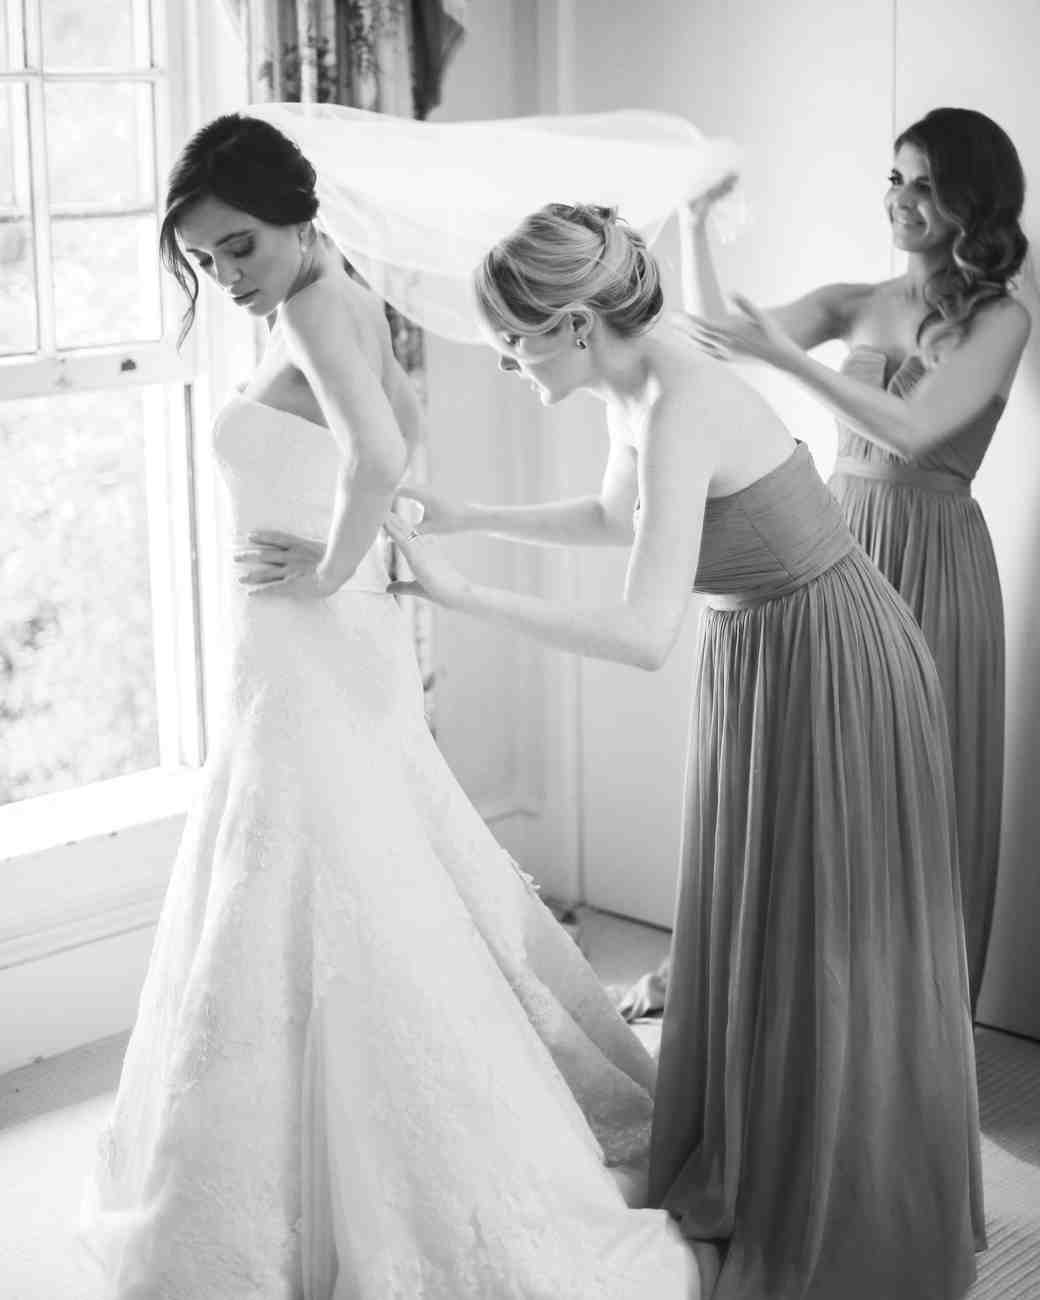 c91ae30c85b 7 Hacks for Keeping Your Strapless Wedding Dress from Falling Down ...